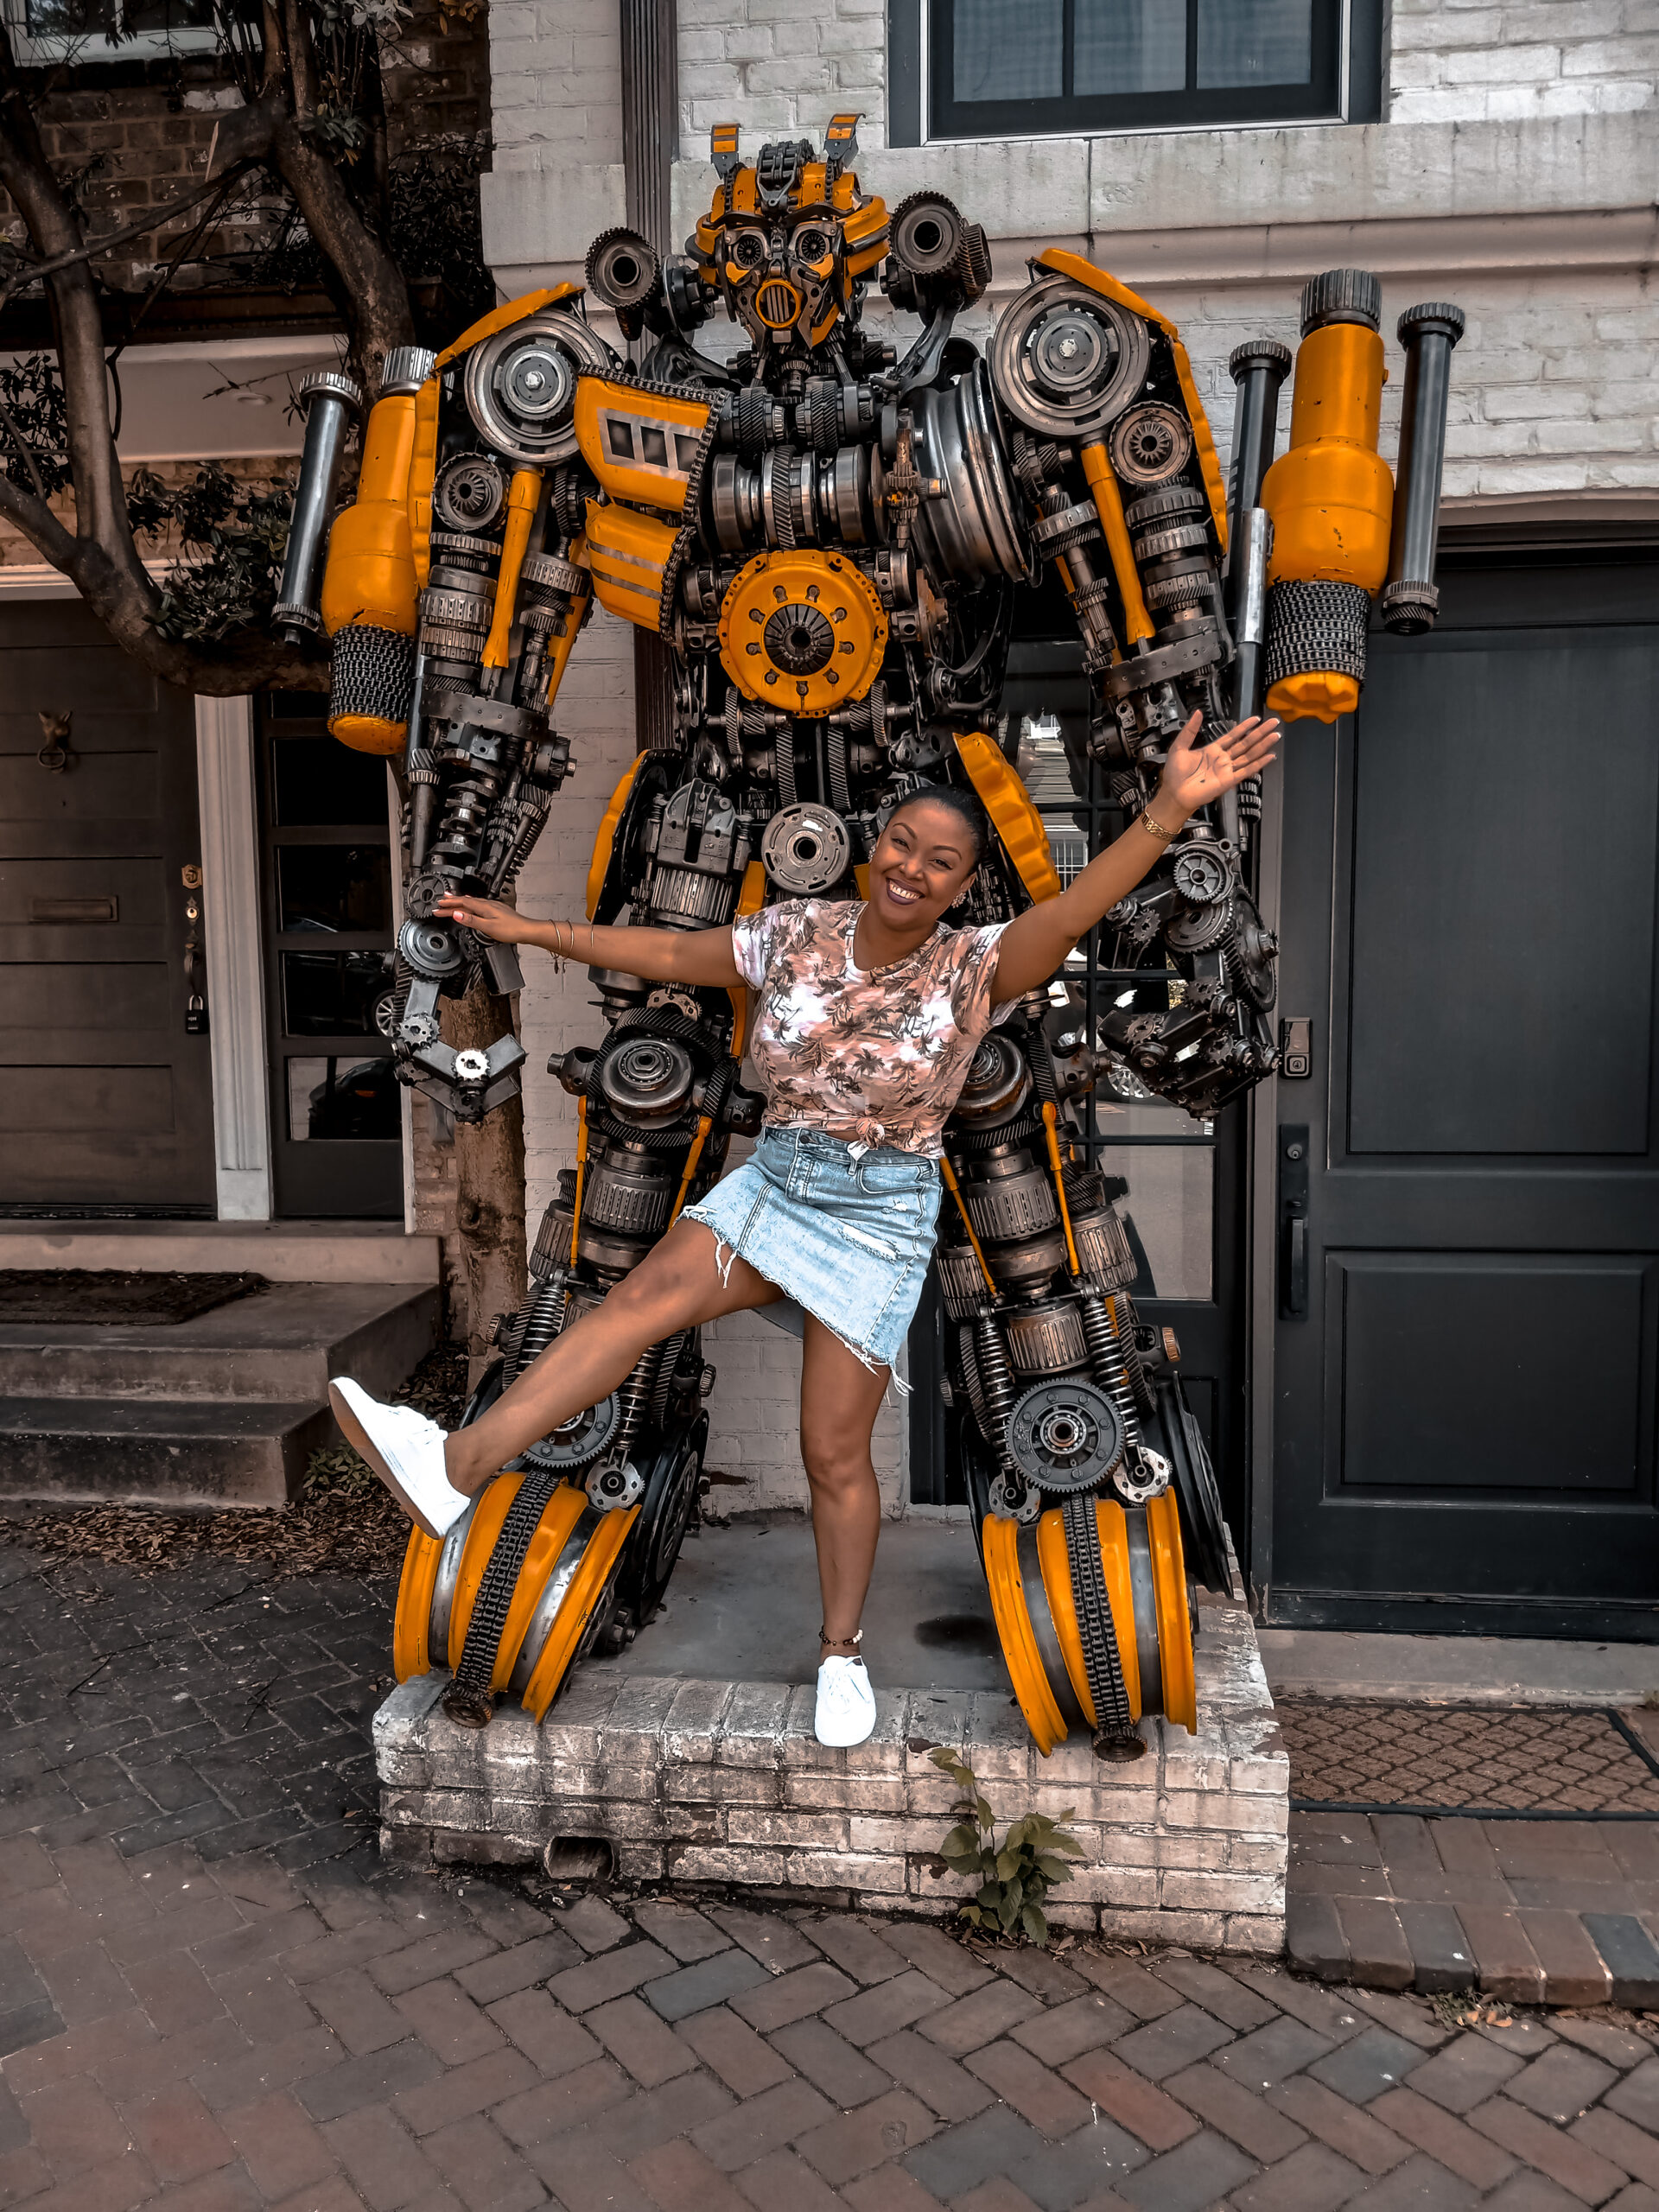 DC blogger Rogan Smith of This Bahamian Gyal poses in front of the Transformers house in Georgetown DC. She is shown in the picture with the robot, Bumblebee.